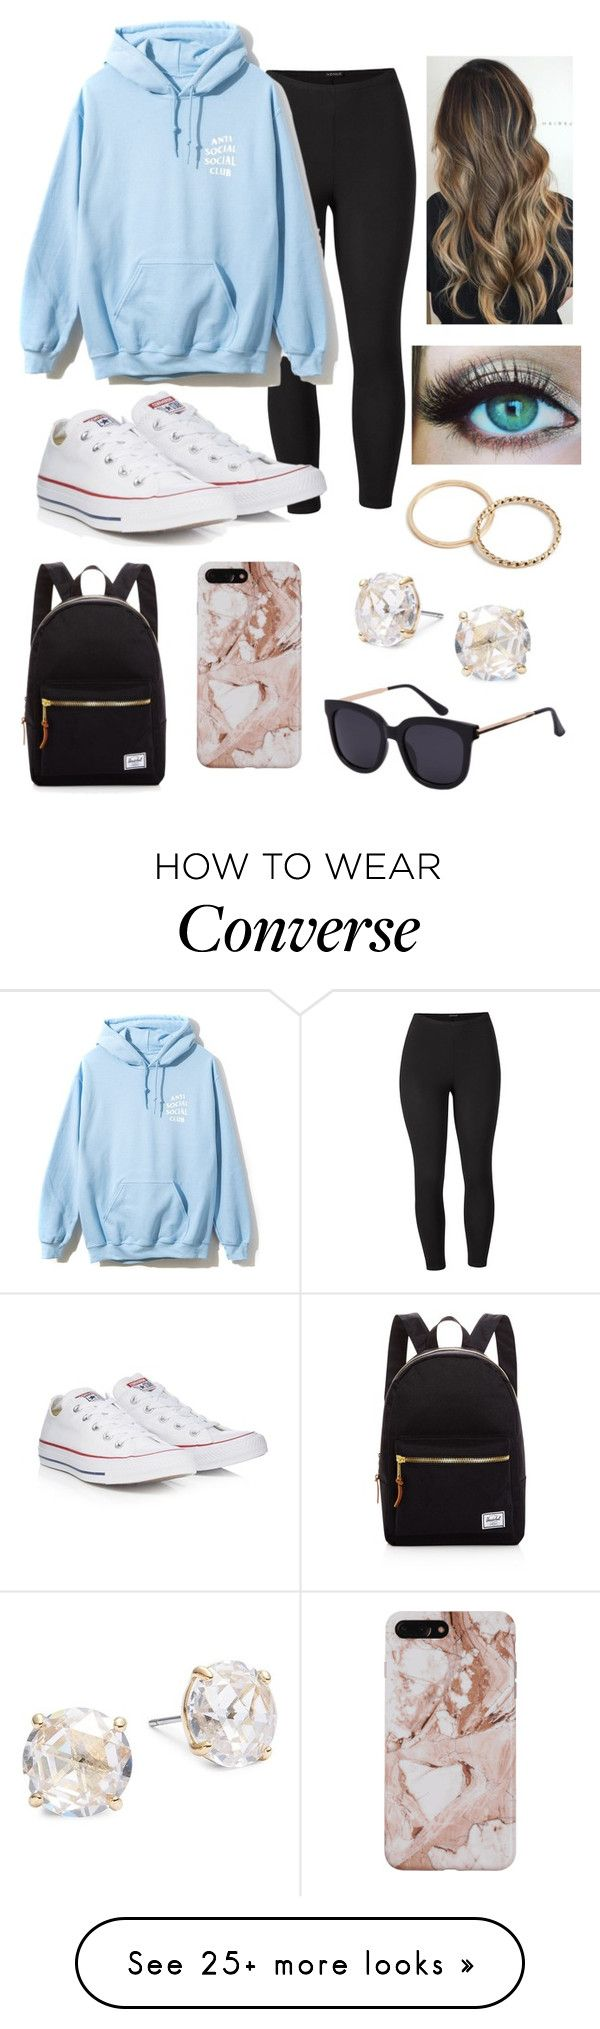 """Untitled #410"" by kaitlyn-skaggs on Polyvore featuring Venus, Converse, Kate Spade, Herschel Supply Co. and plus size clothing"